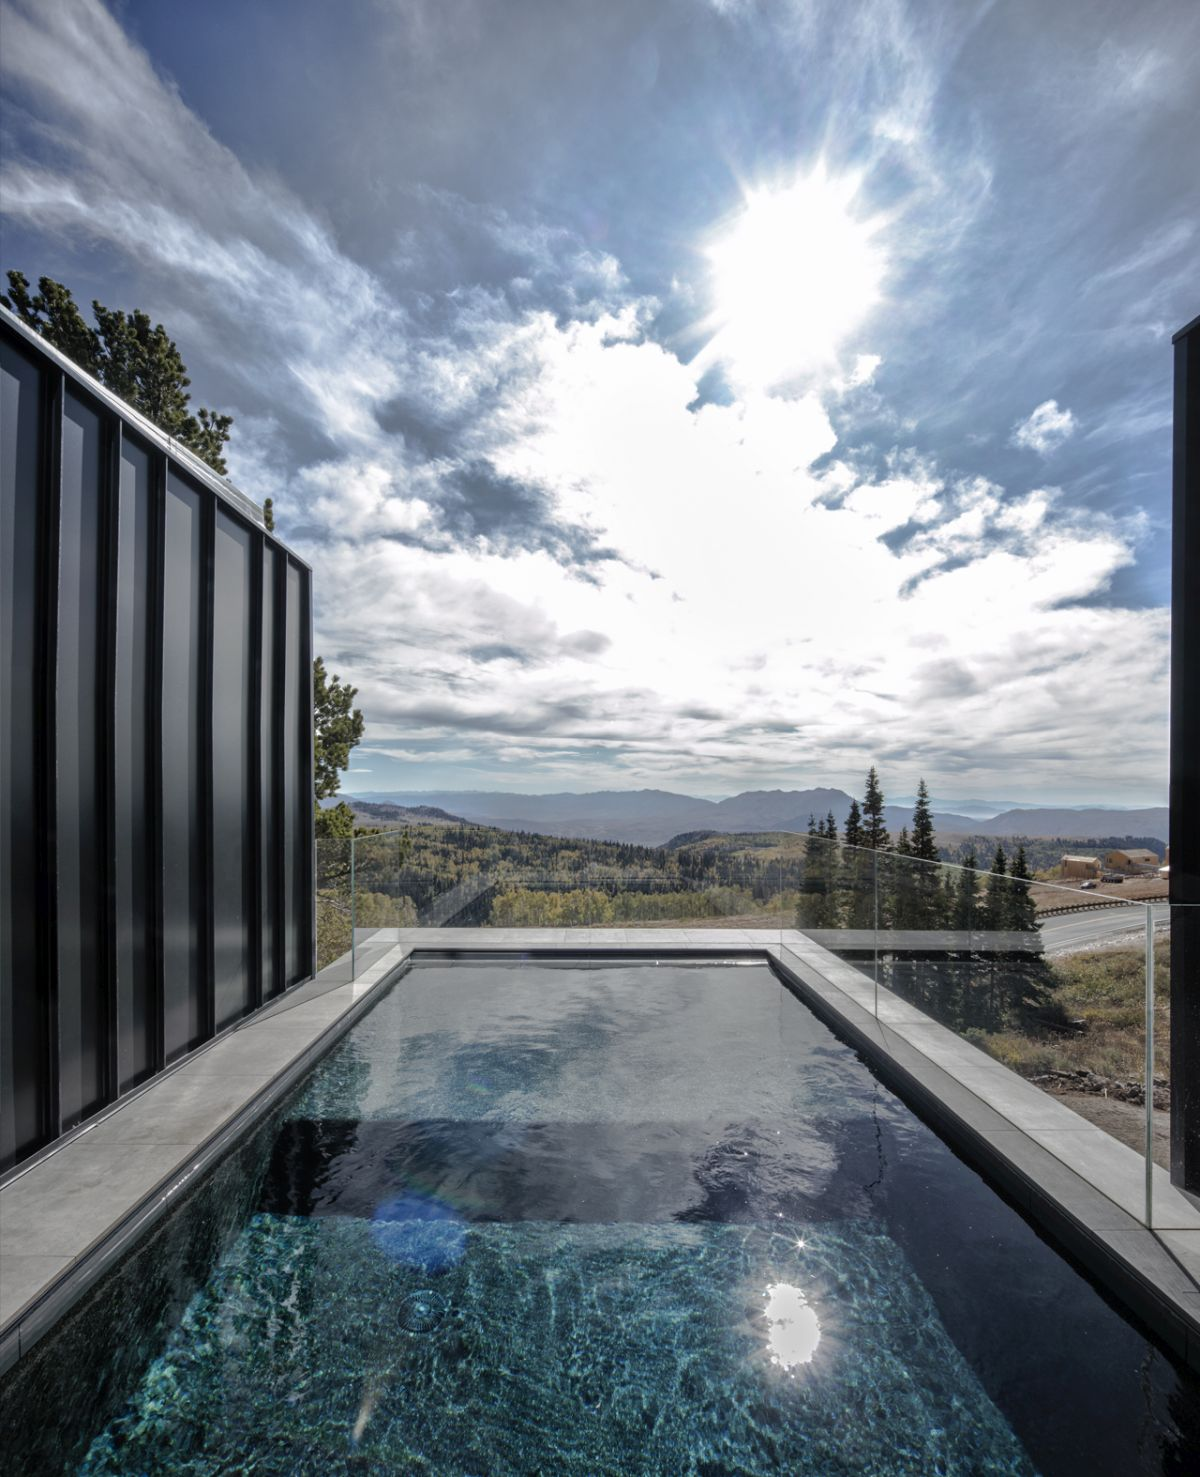 The pool is framed by transparent railings which expose it to the panoramic view